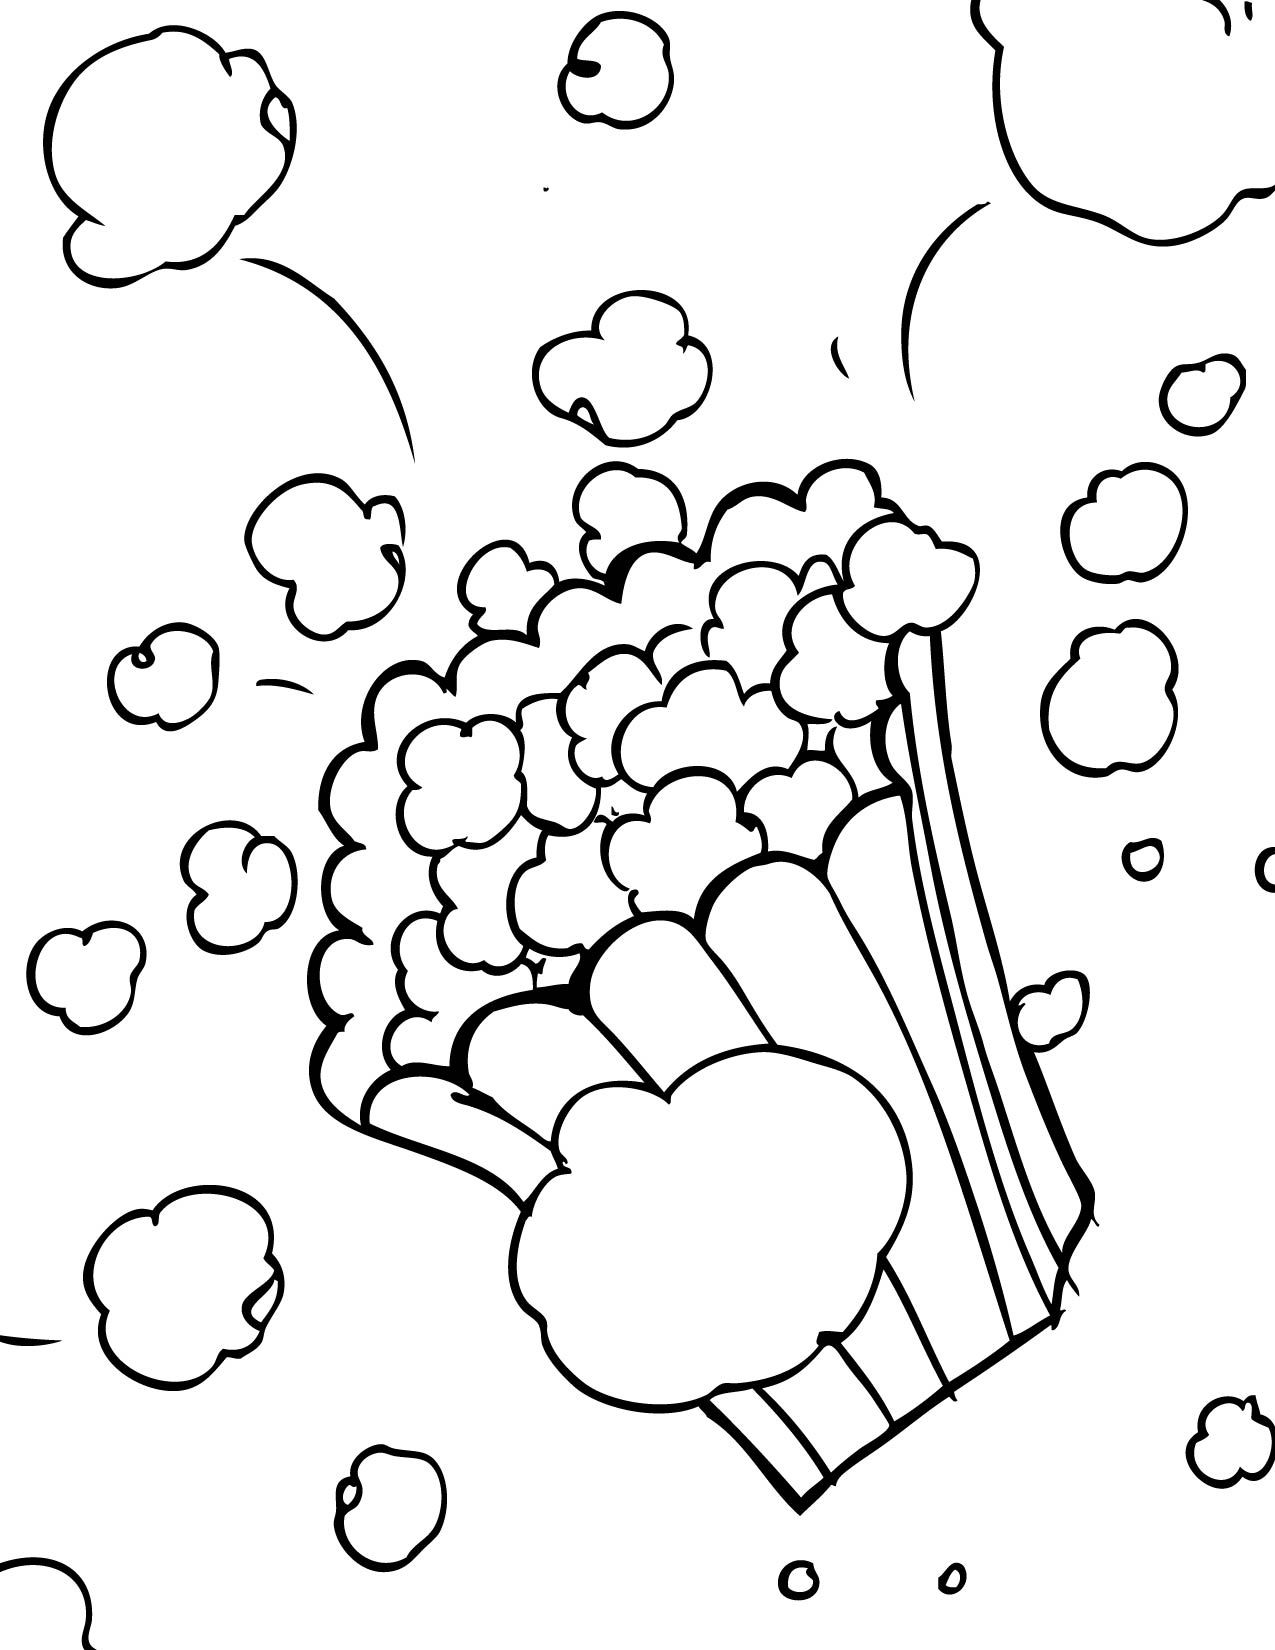 Popcorn Coloring Pages To Download And Print For Free Coloring